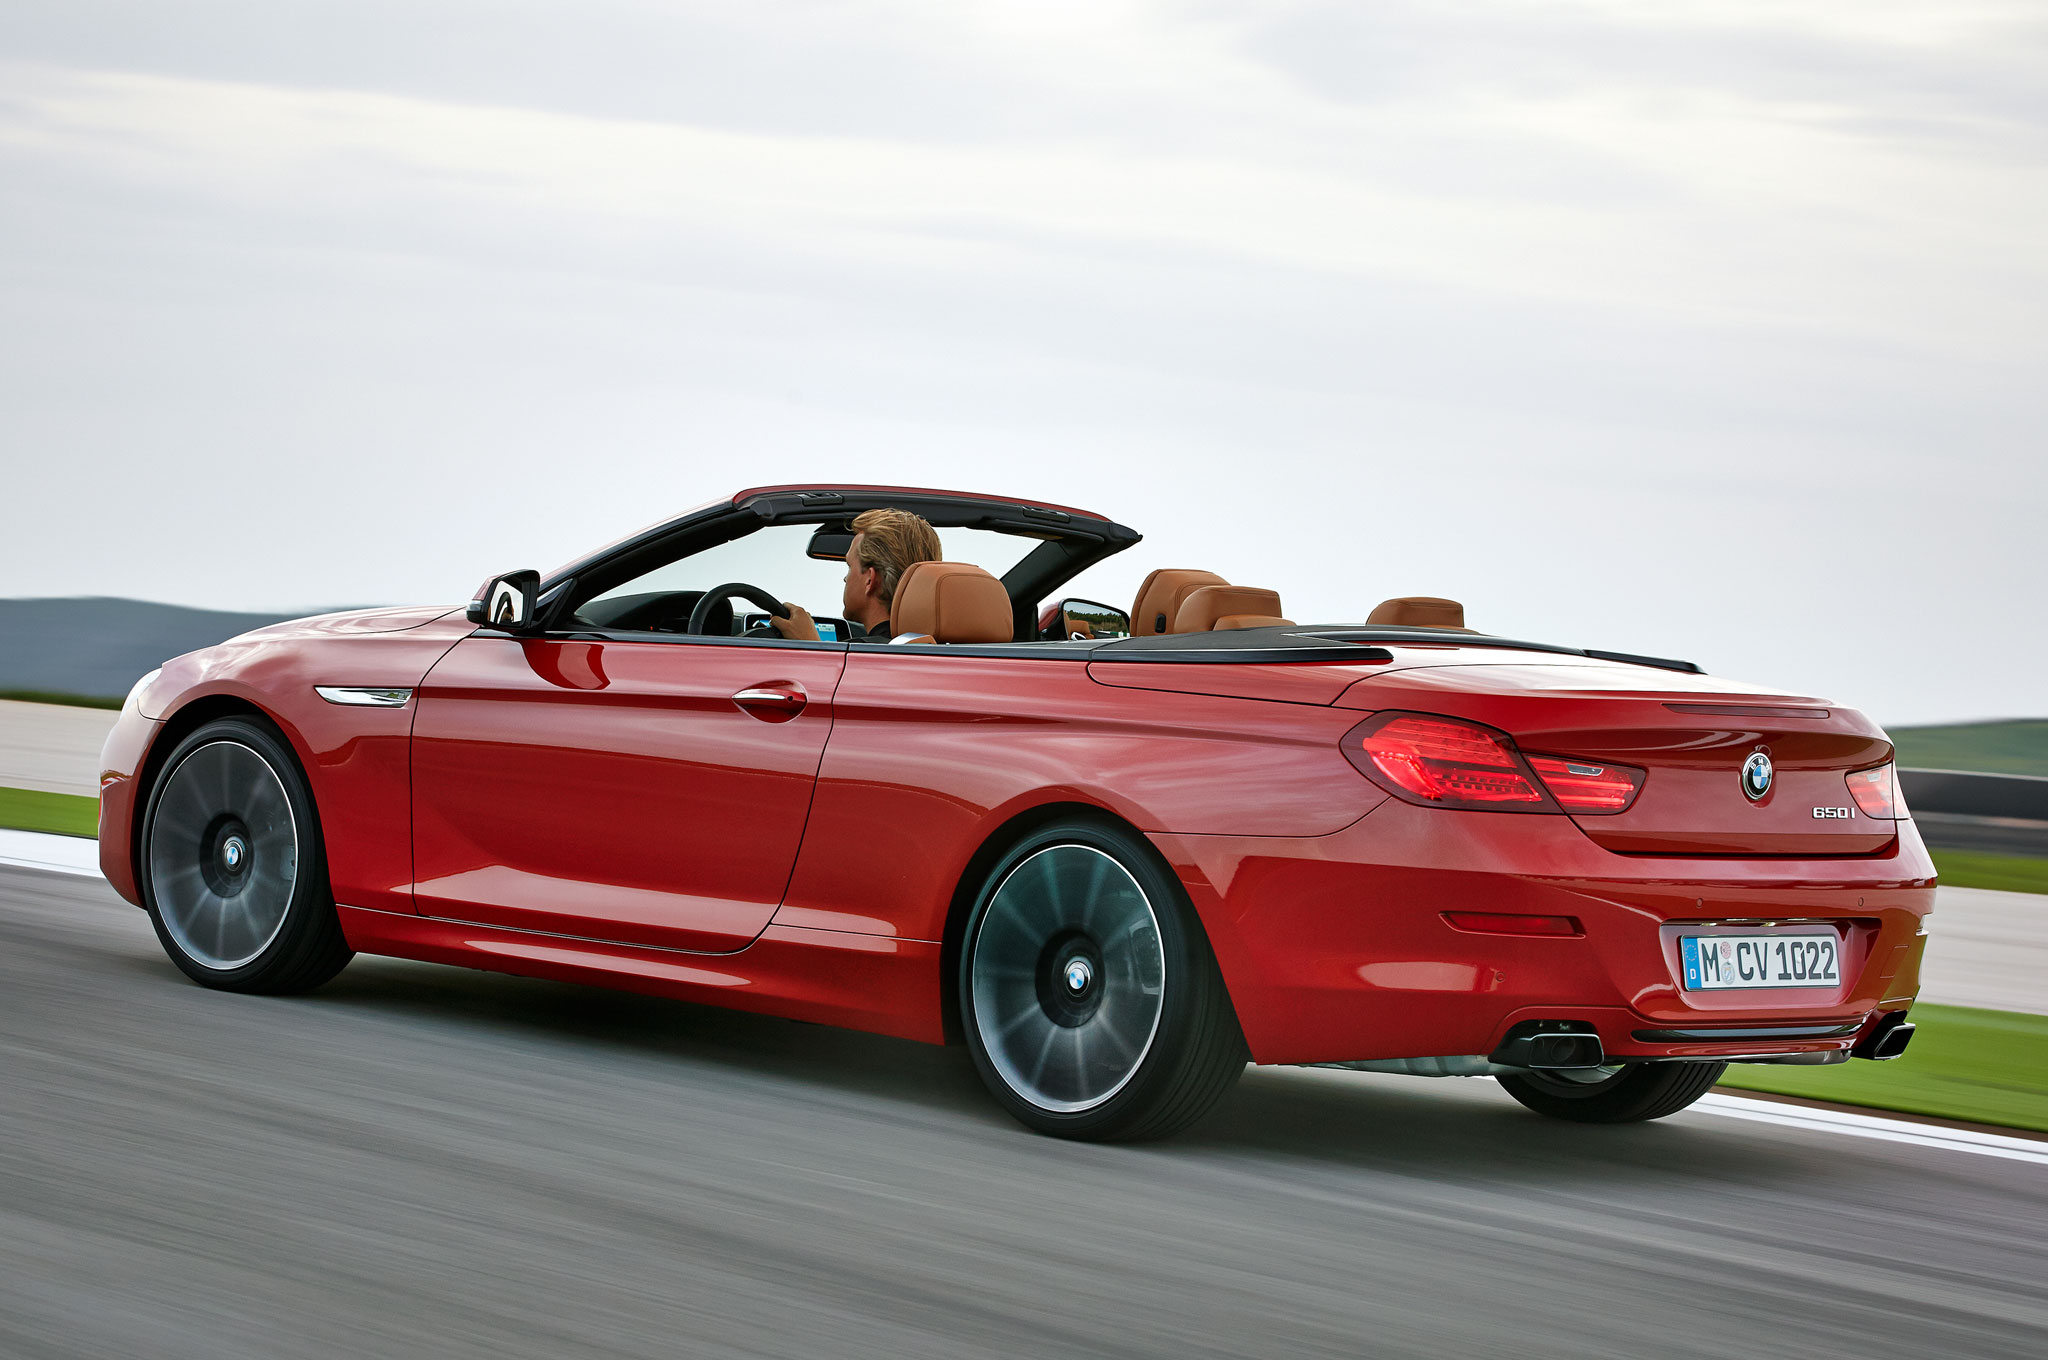 2016 Bmw 6 Series Convetible Rear Three Quarter In Motion 1